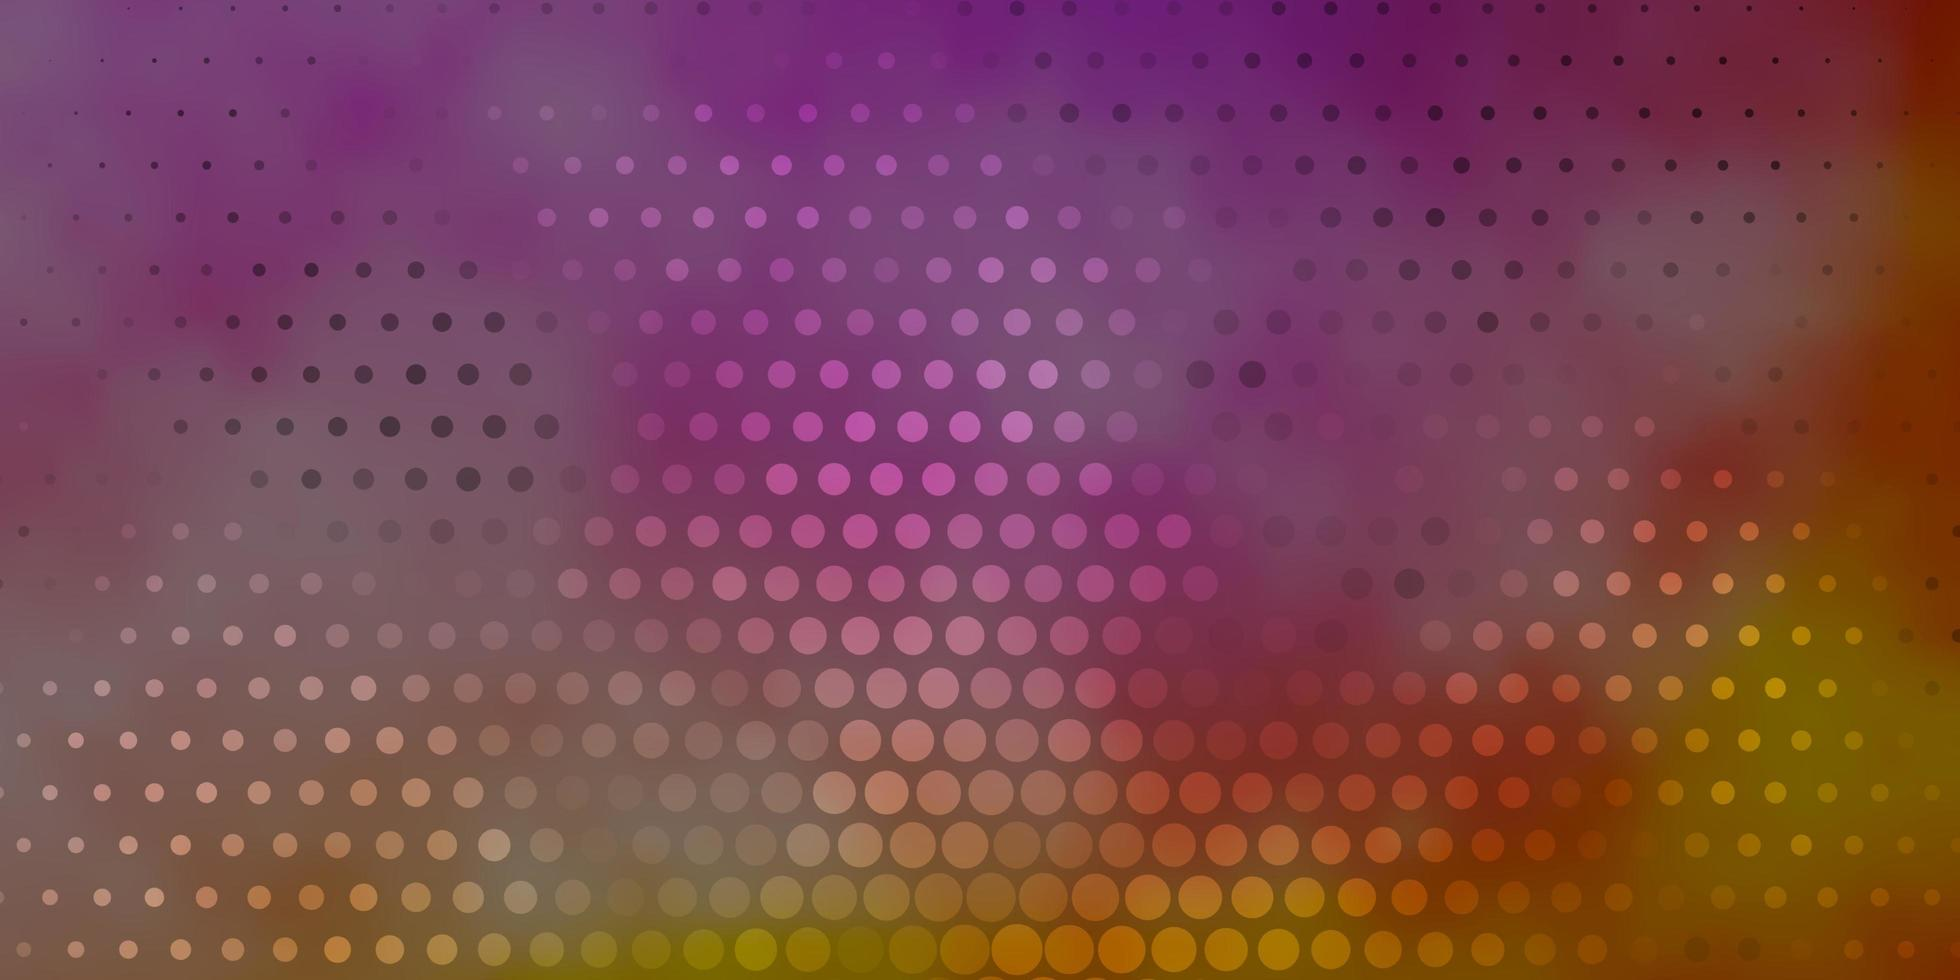 Dark Pink, Yellow background with circles. vector